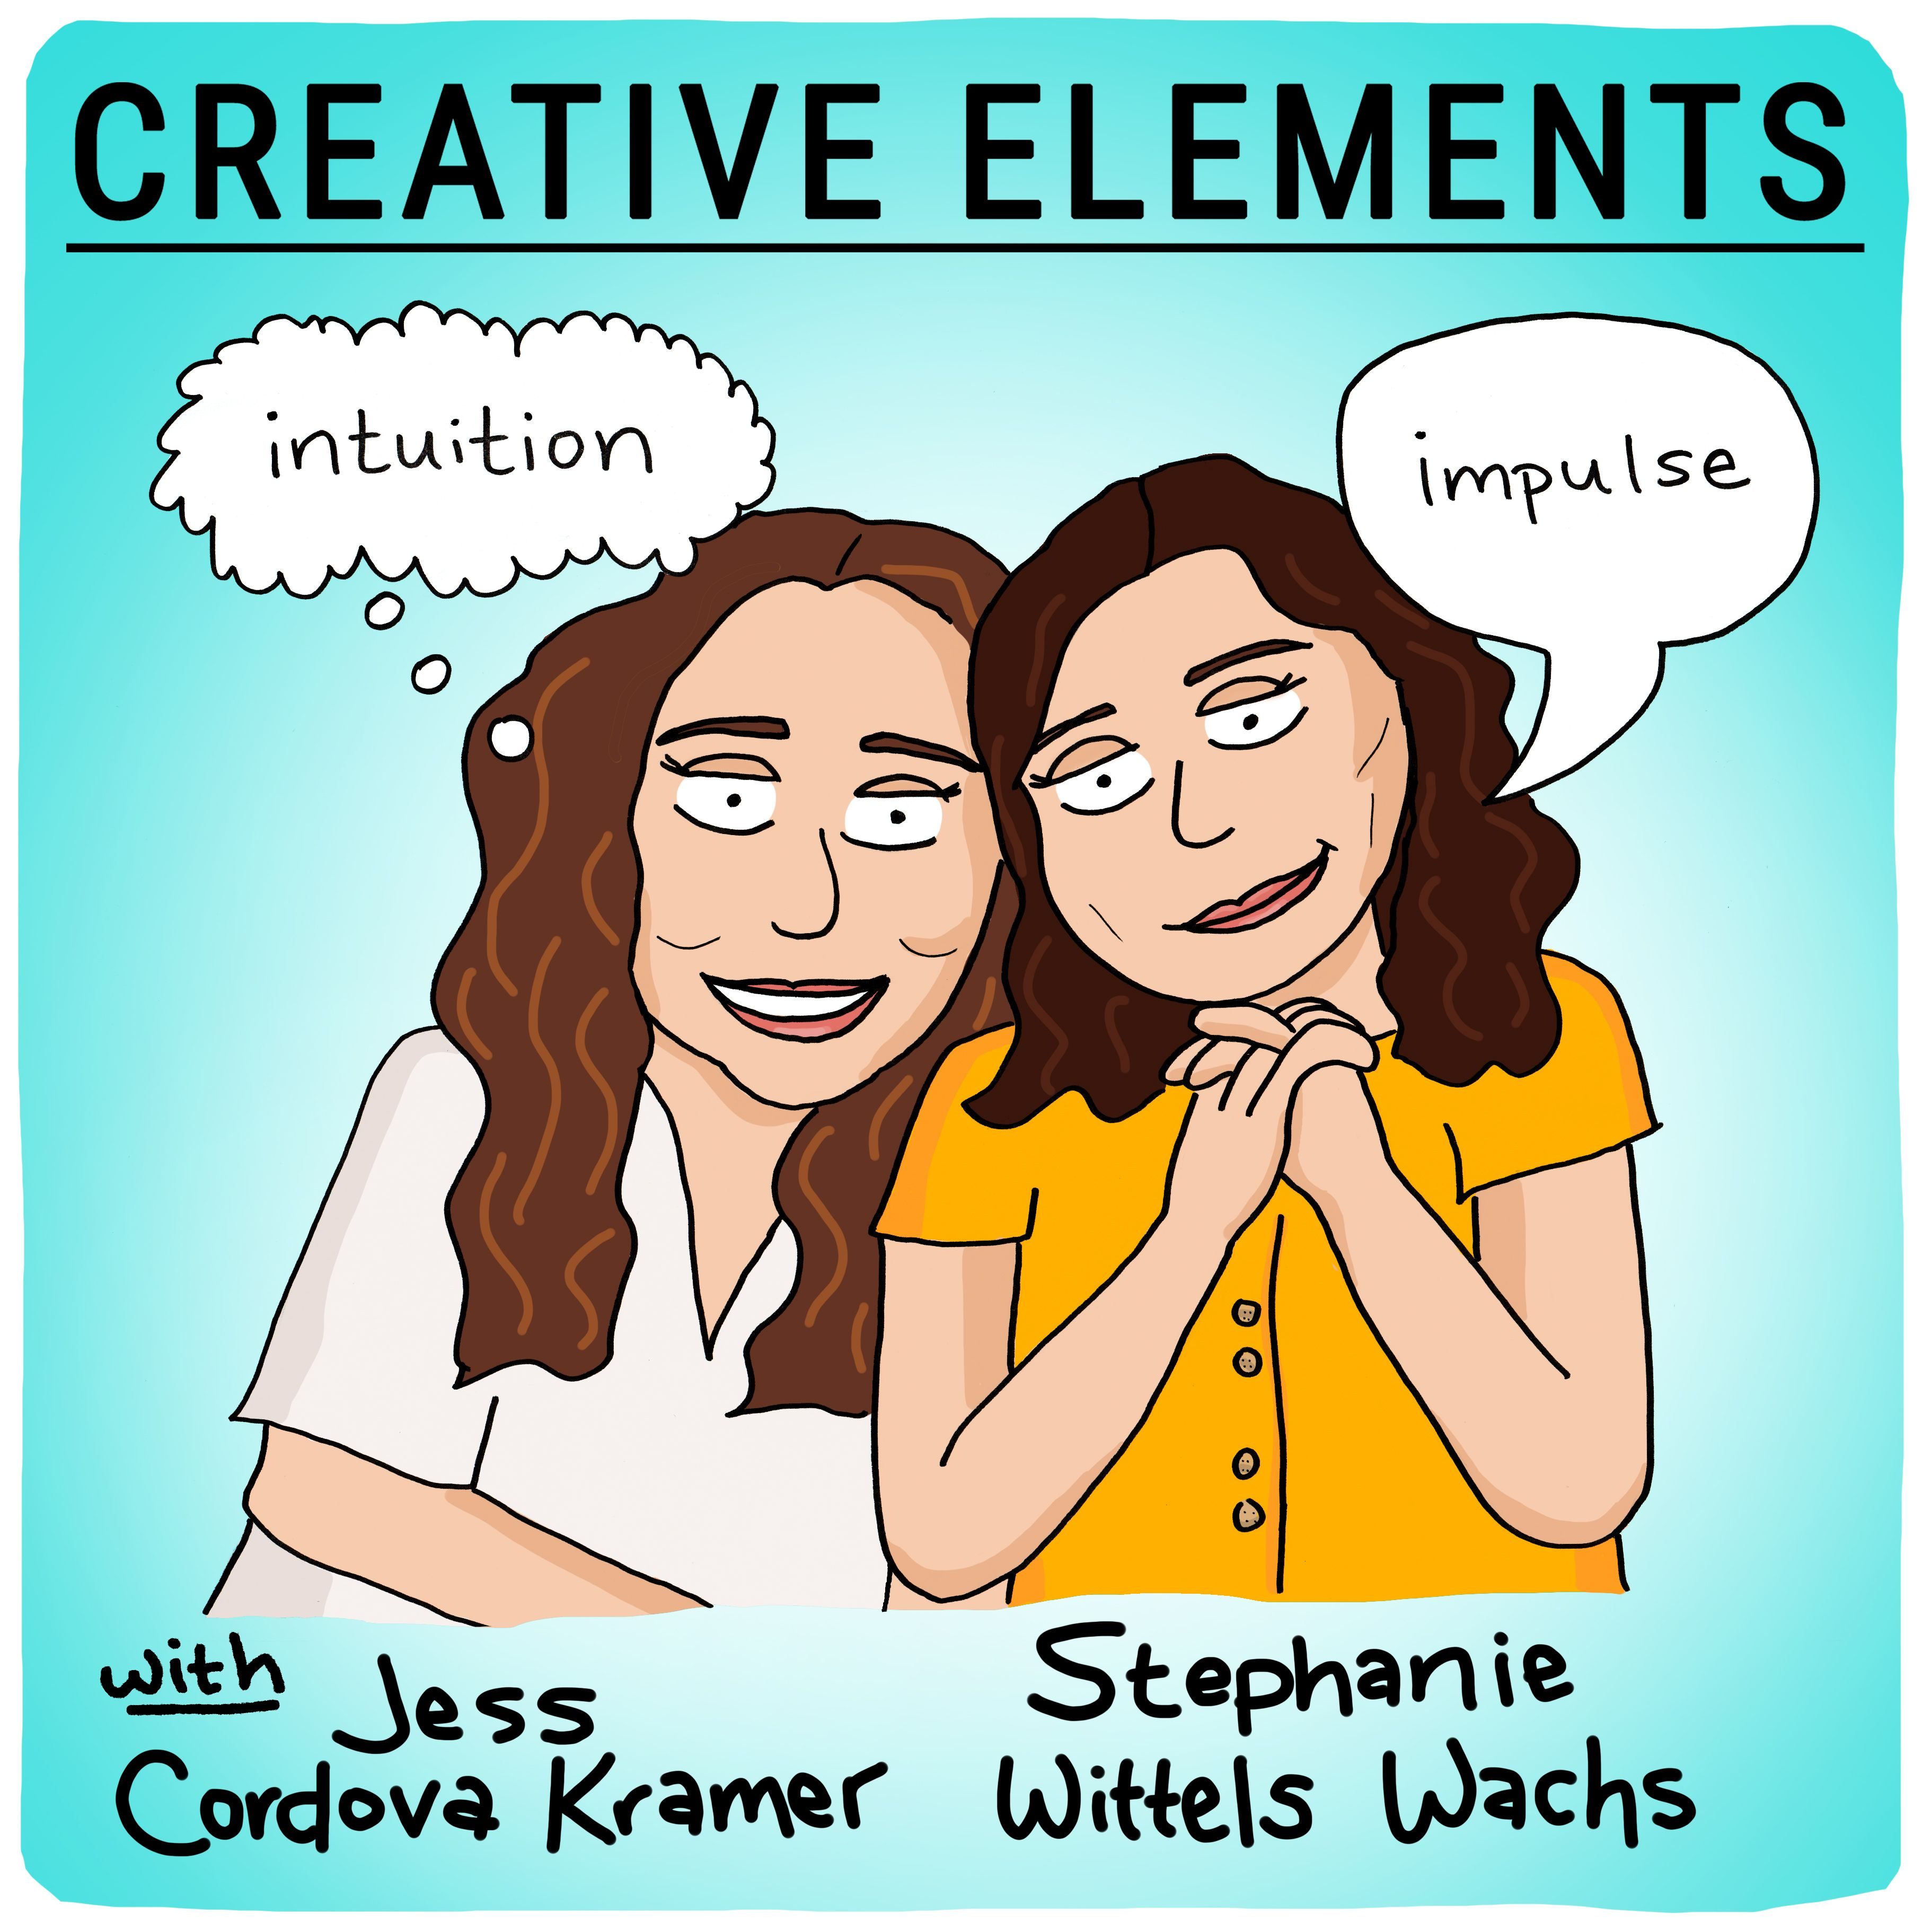 #45: Jess Cordova Kramer [Intuition] and Stephanie Wittels Wachs [Impulse]